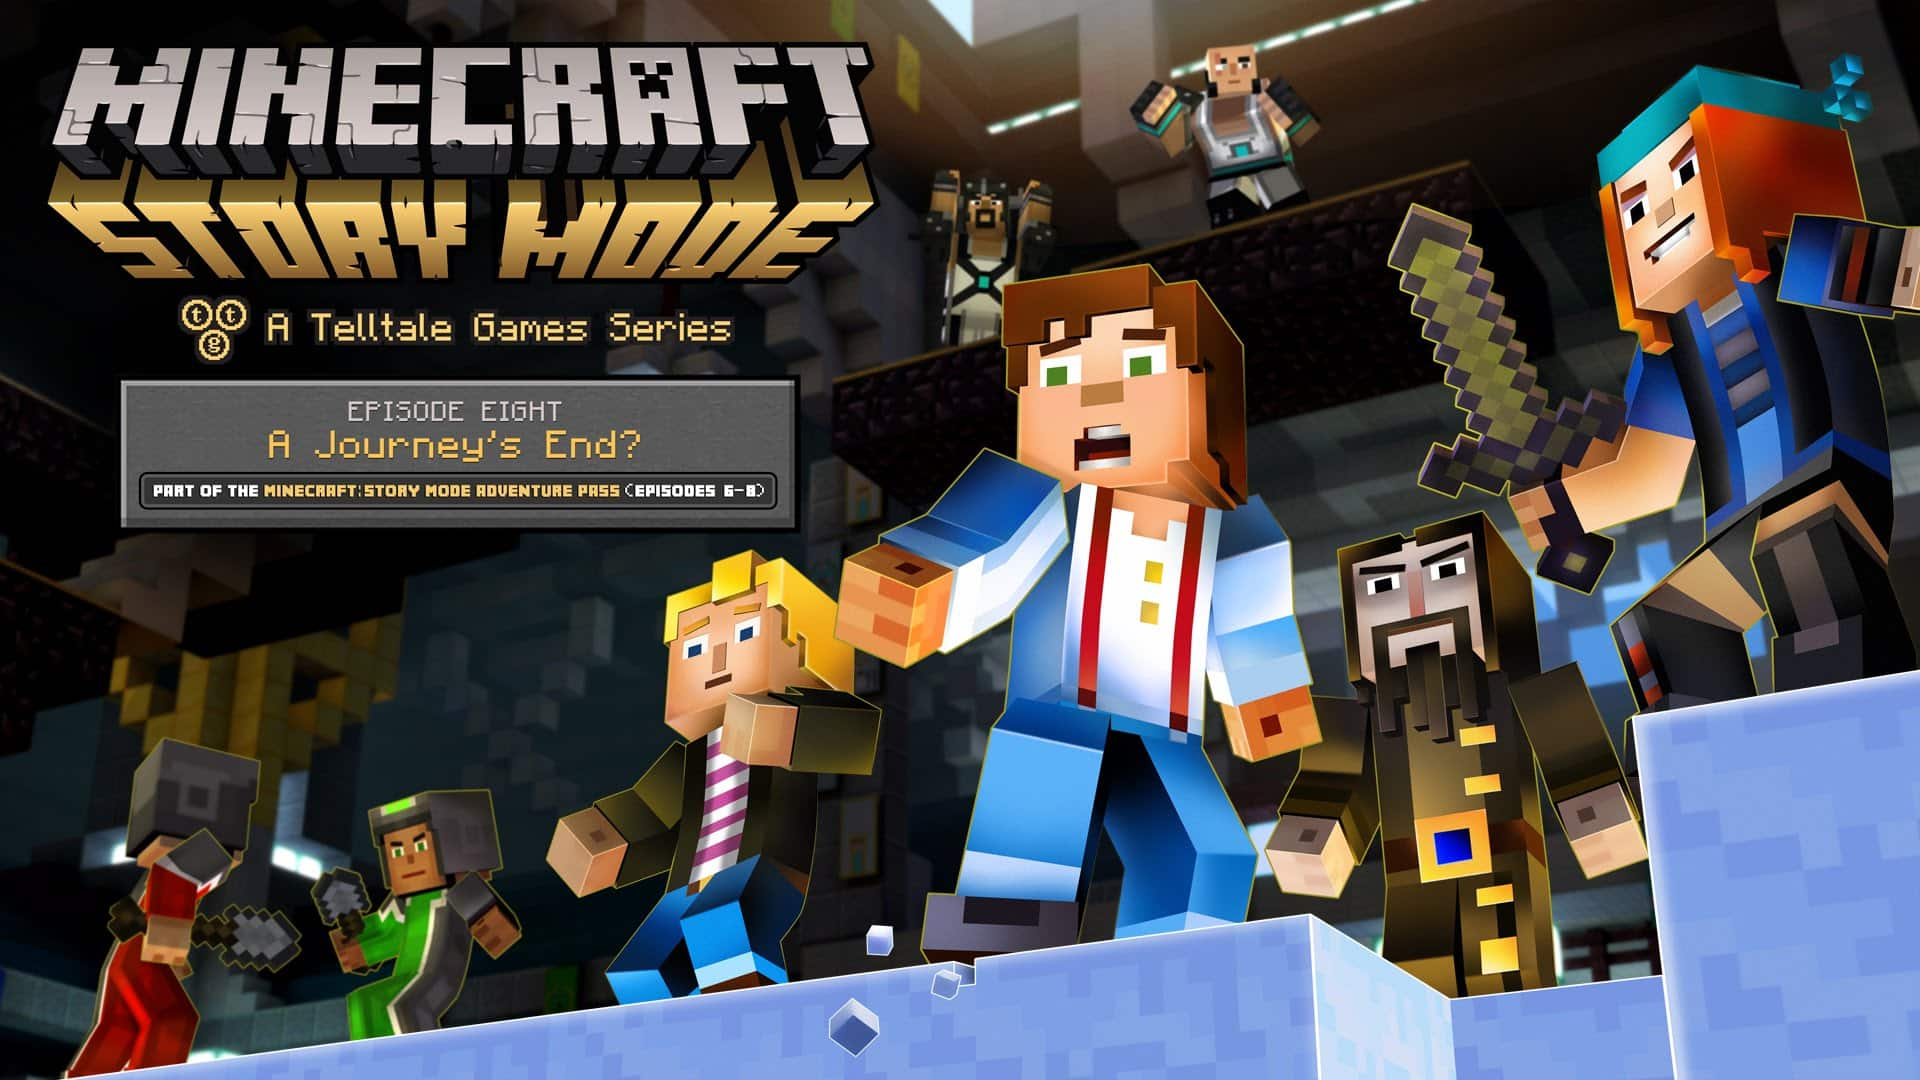 Minecraft: Story Mode : Episode 8 A Journey's End? disponible